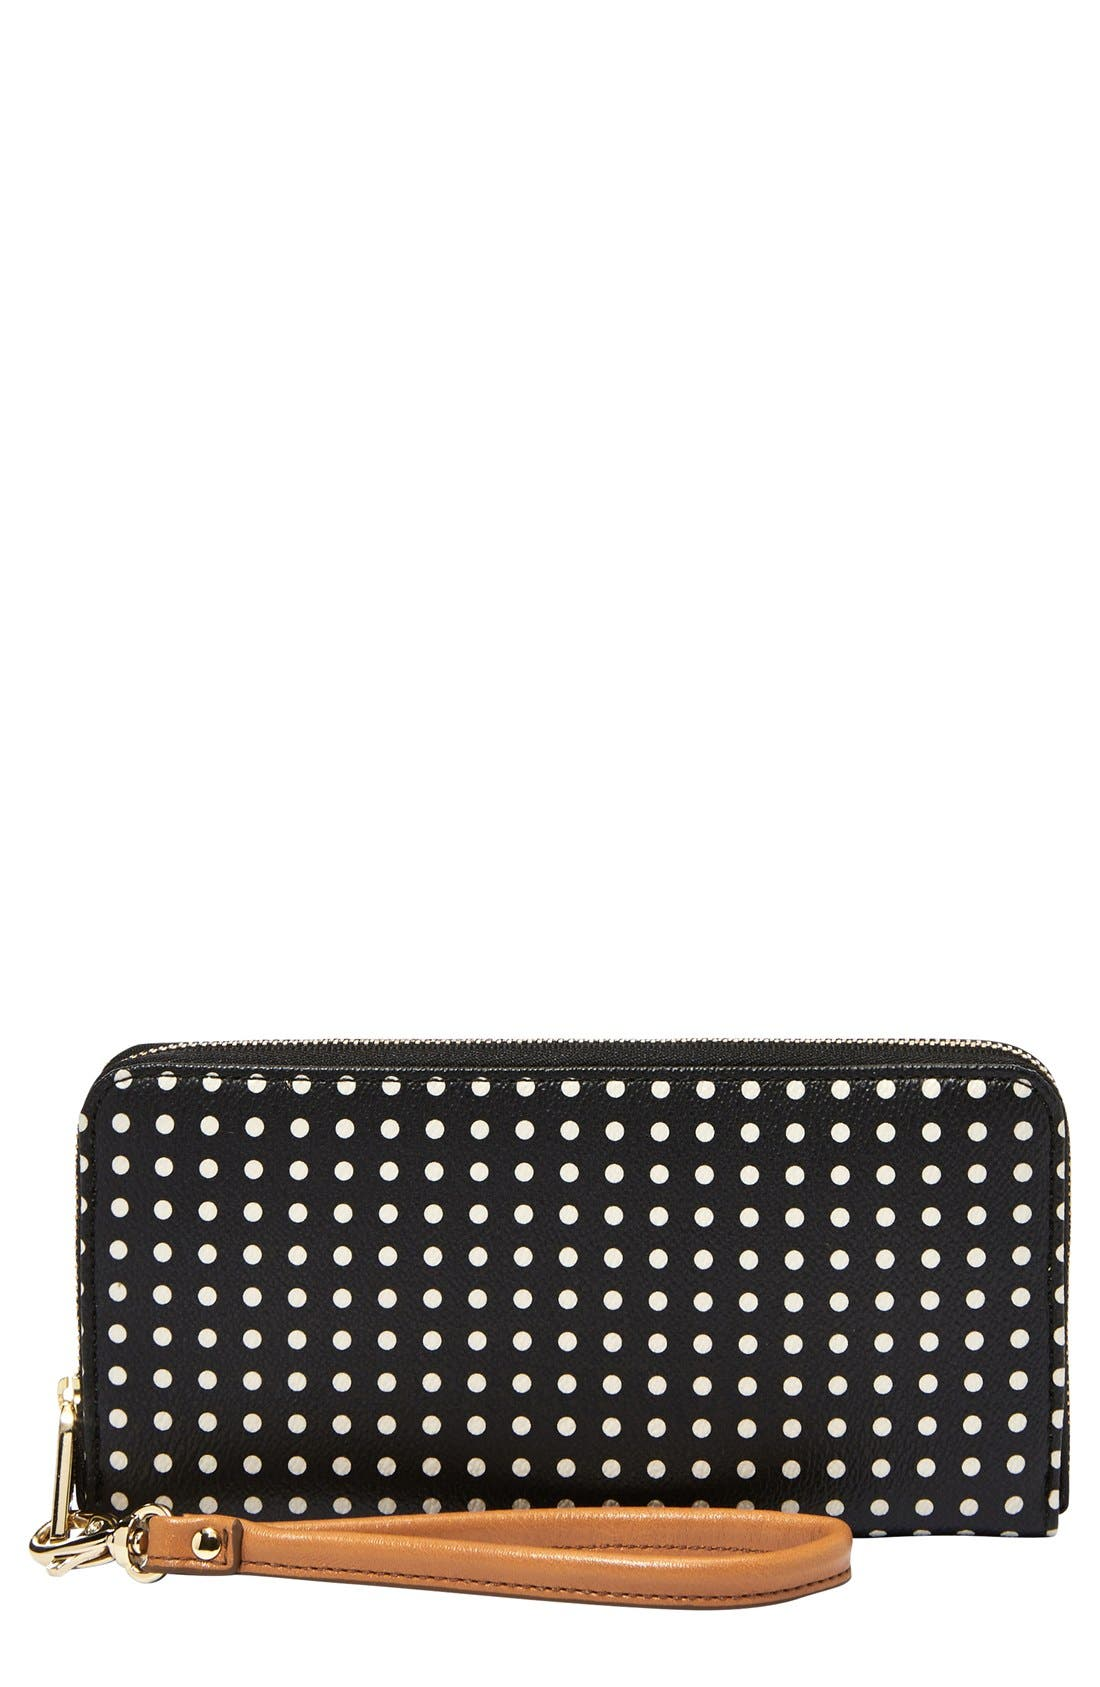 Alternate Image 1 Selected - Fossil 'Sydney' Print Leather Zip Clutch Wallet